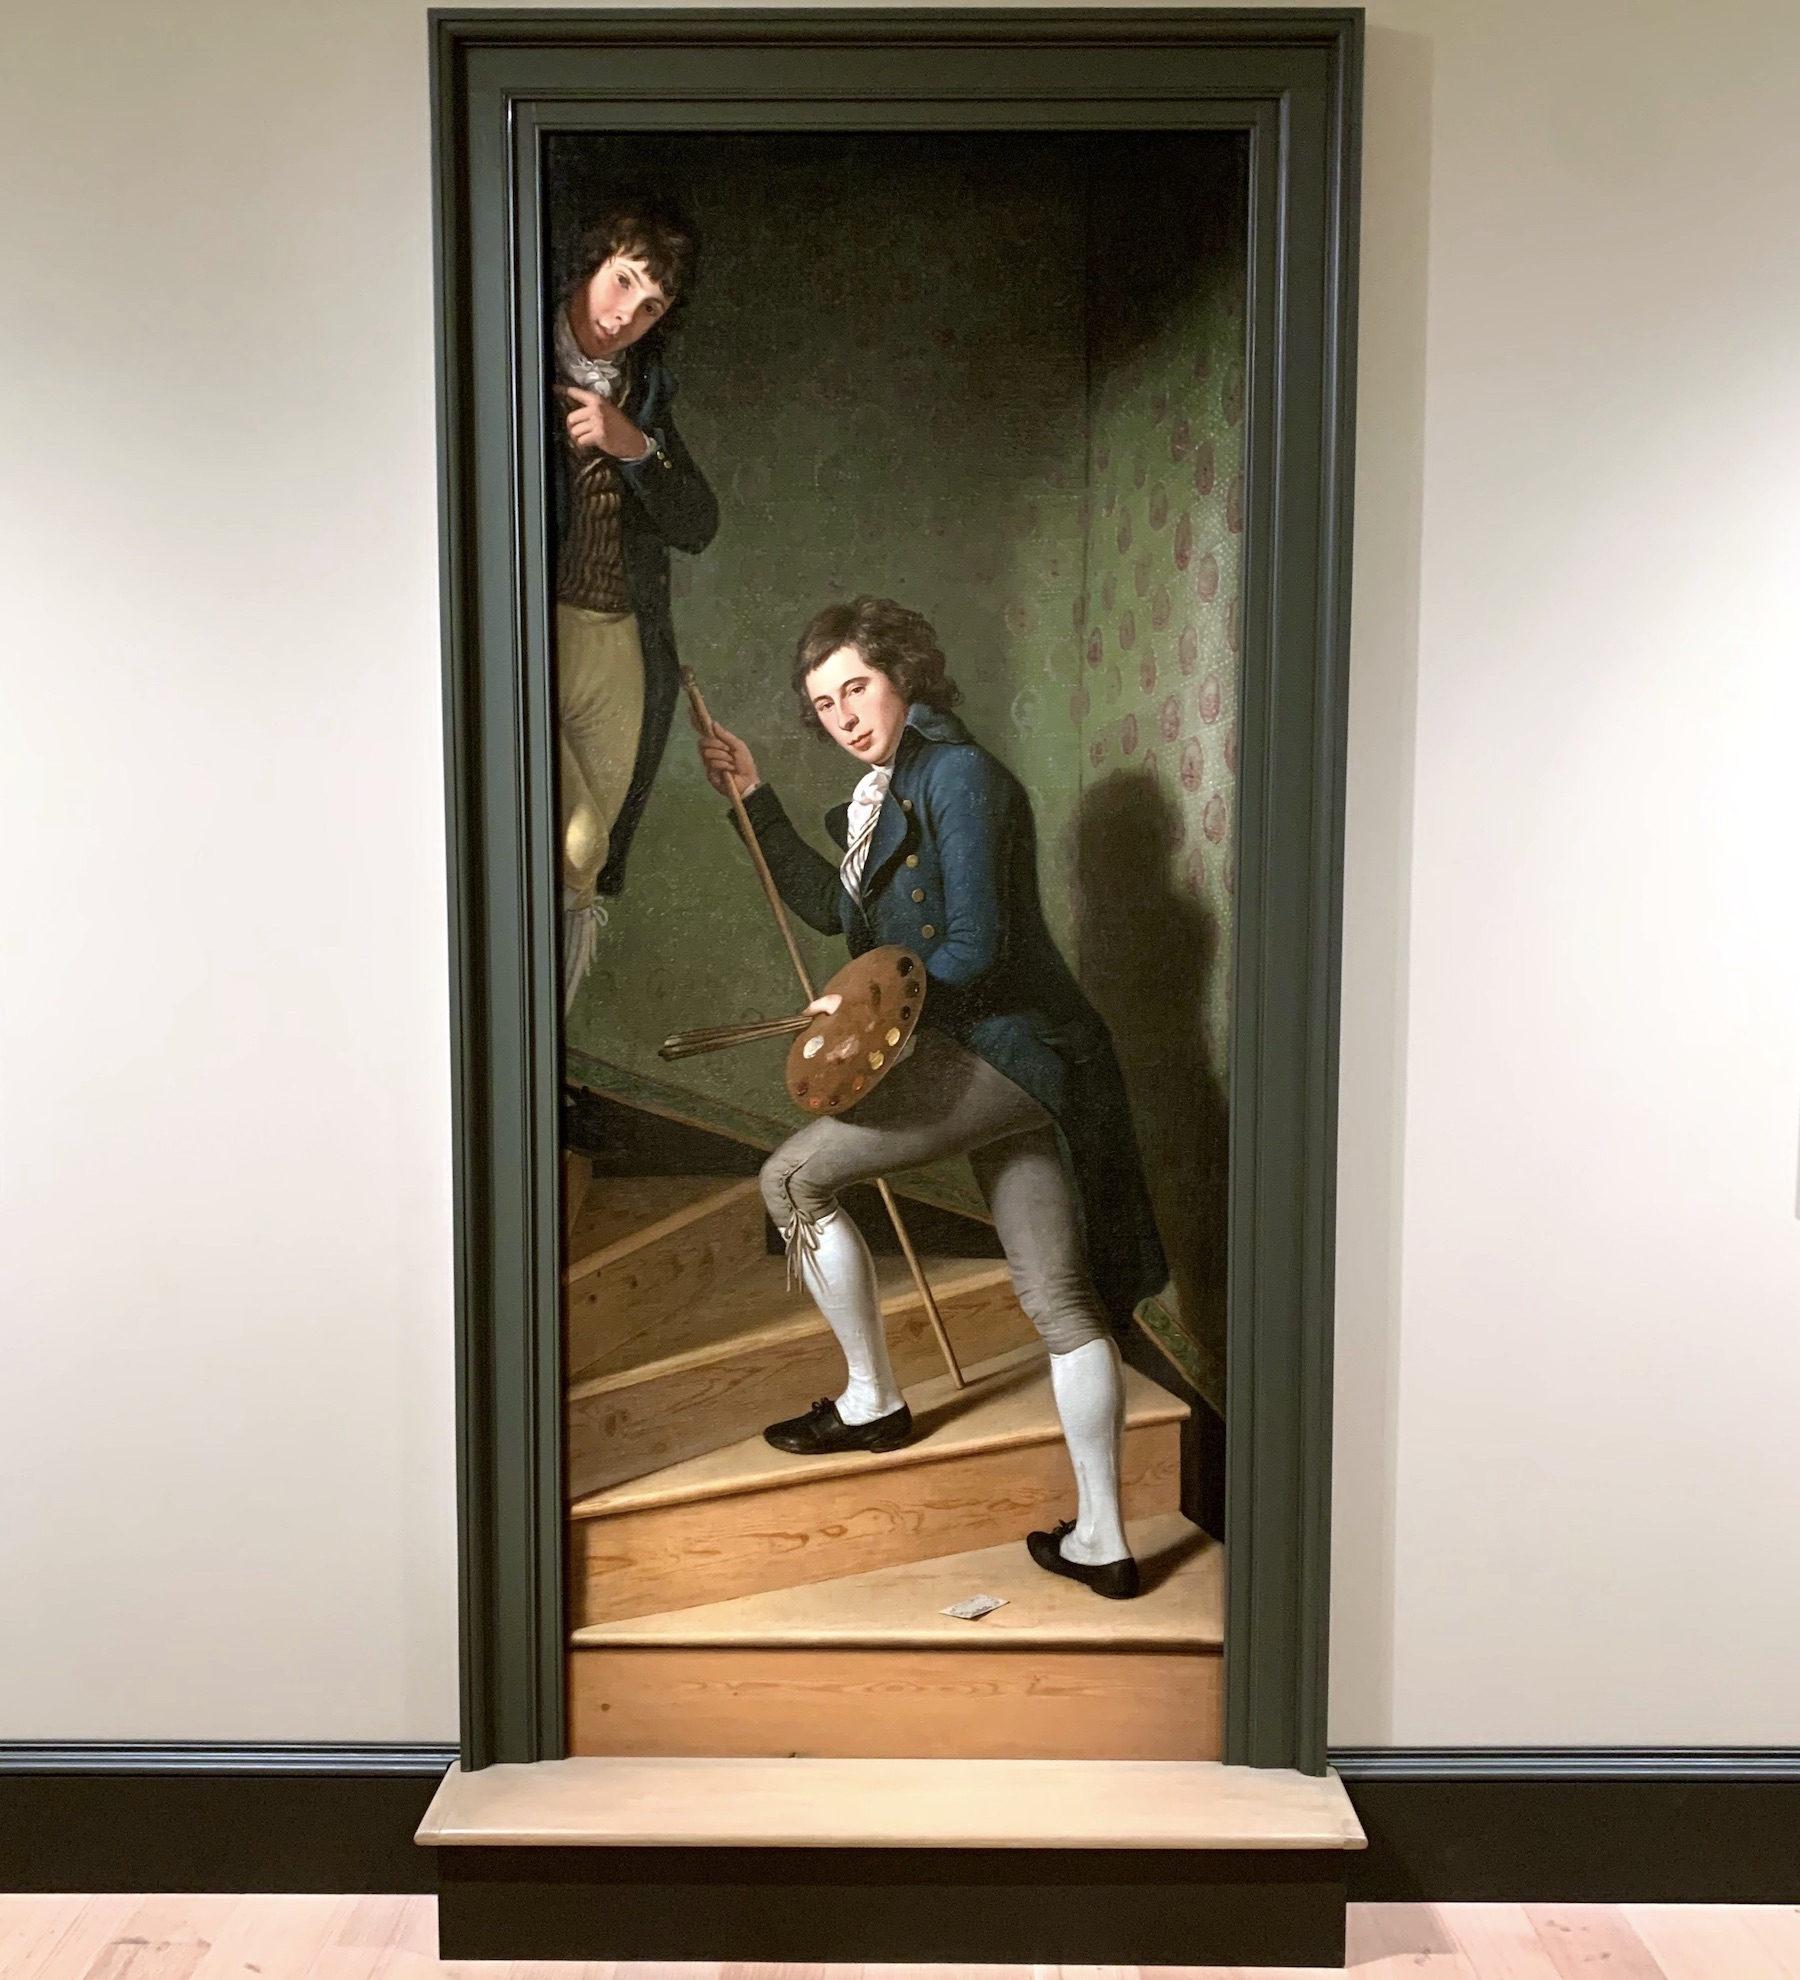 This Delightful Trick Painting Is a Treasure of Early U.S. Art. Here Are 3 Facts About the Philadelphia Museum's Beloved Trompe L'oeil | Artnet News